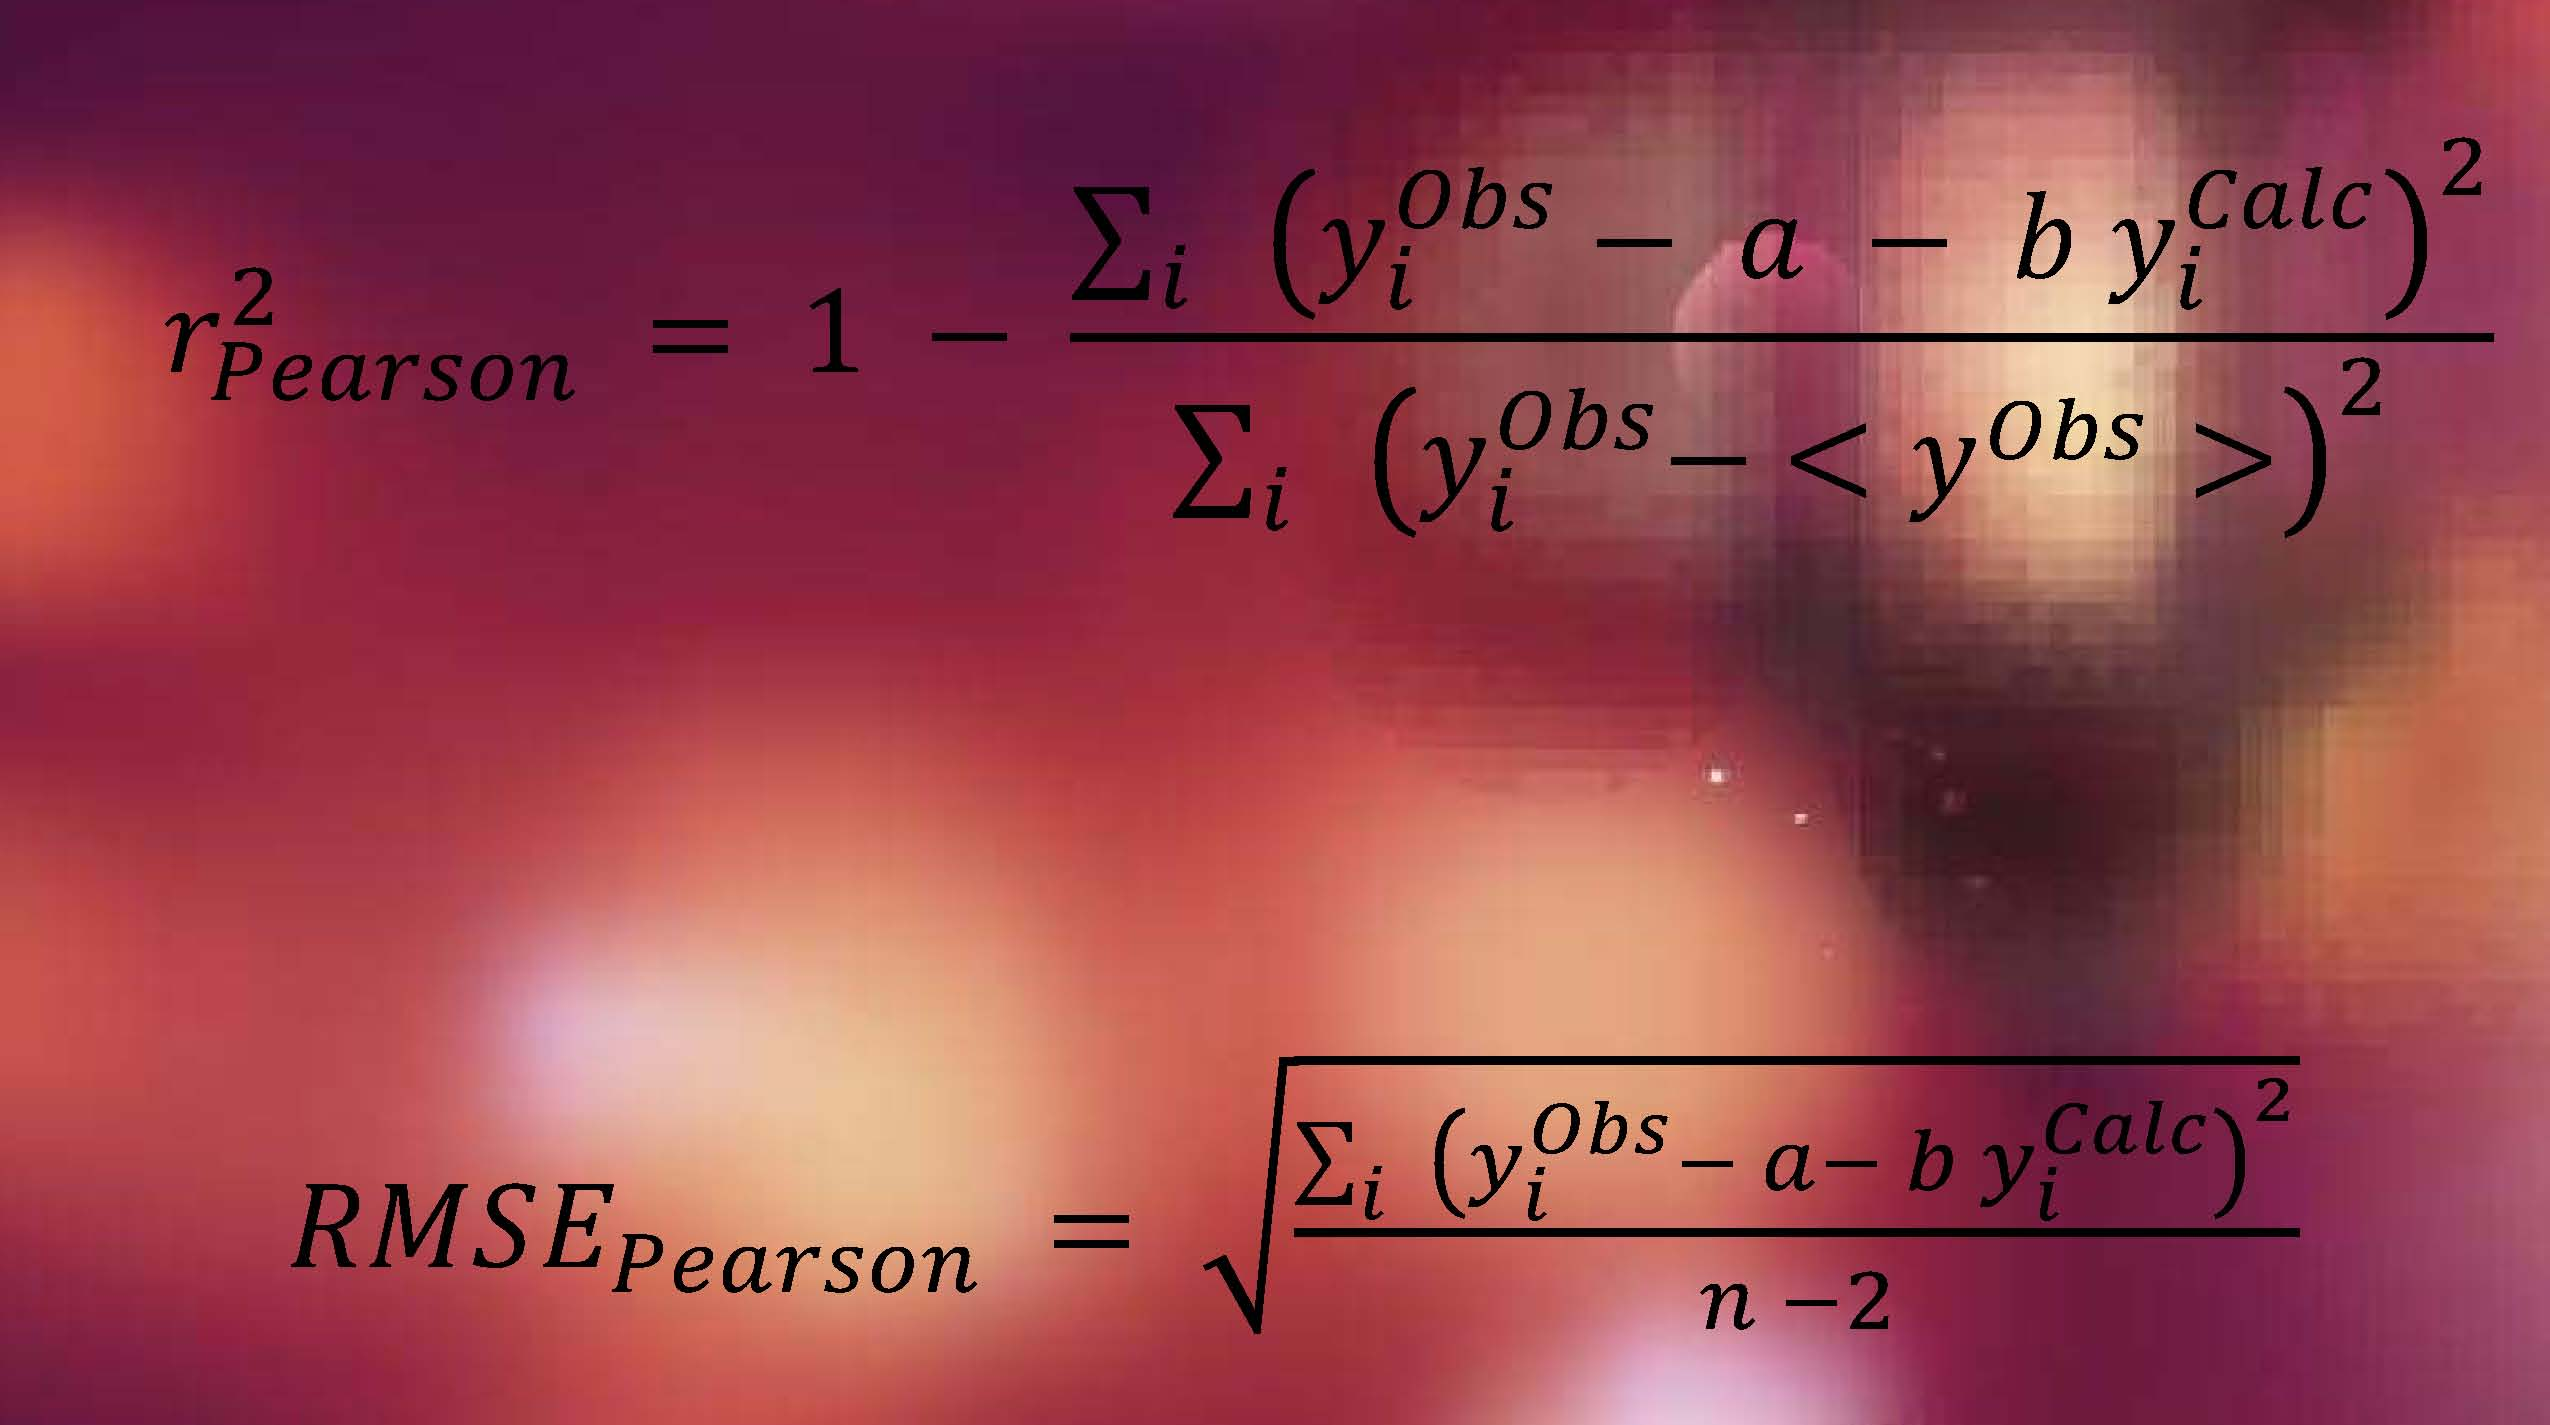 the coefficient of determination (r2), Pearson's linear correlation coefficient (rPearson), and the root-mean-square error (RMSE), among many others.